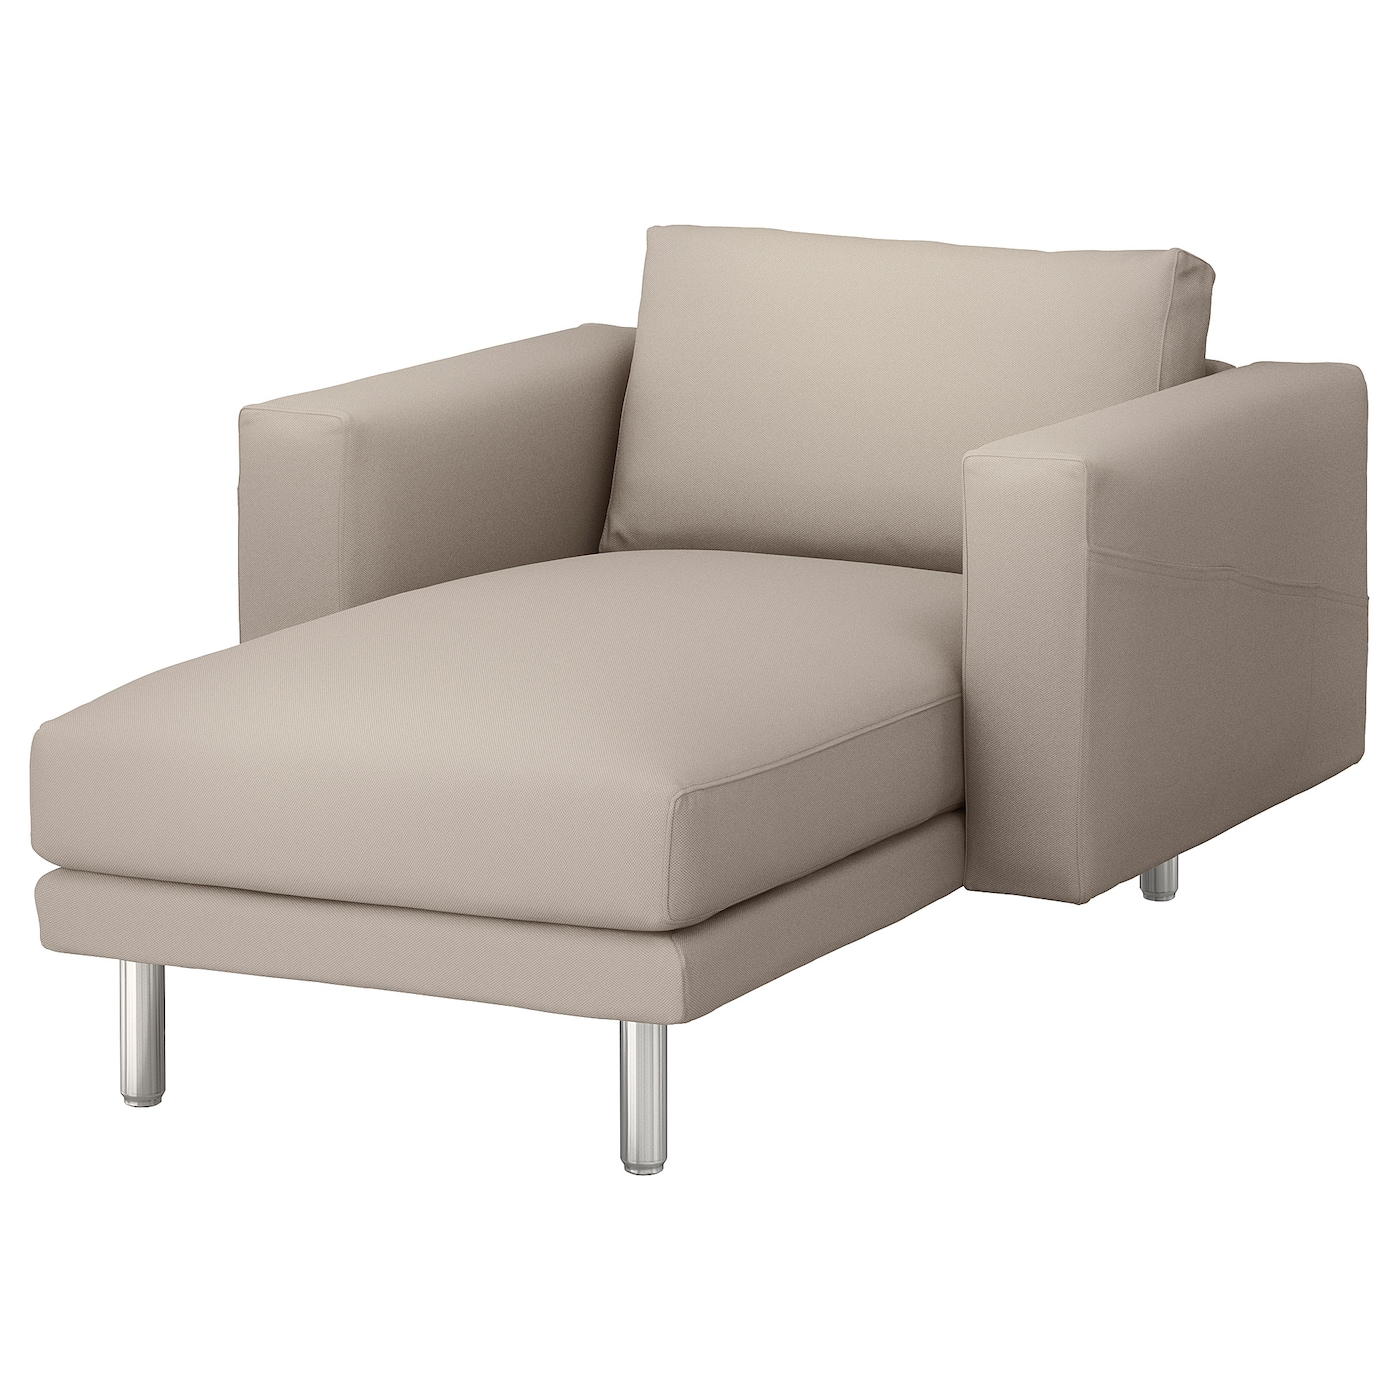 Chaise lounge sofa ikea images - Chaise longue jardin ikea ...